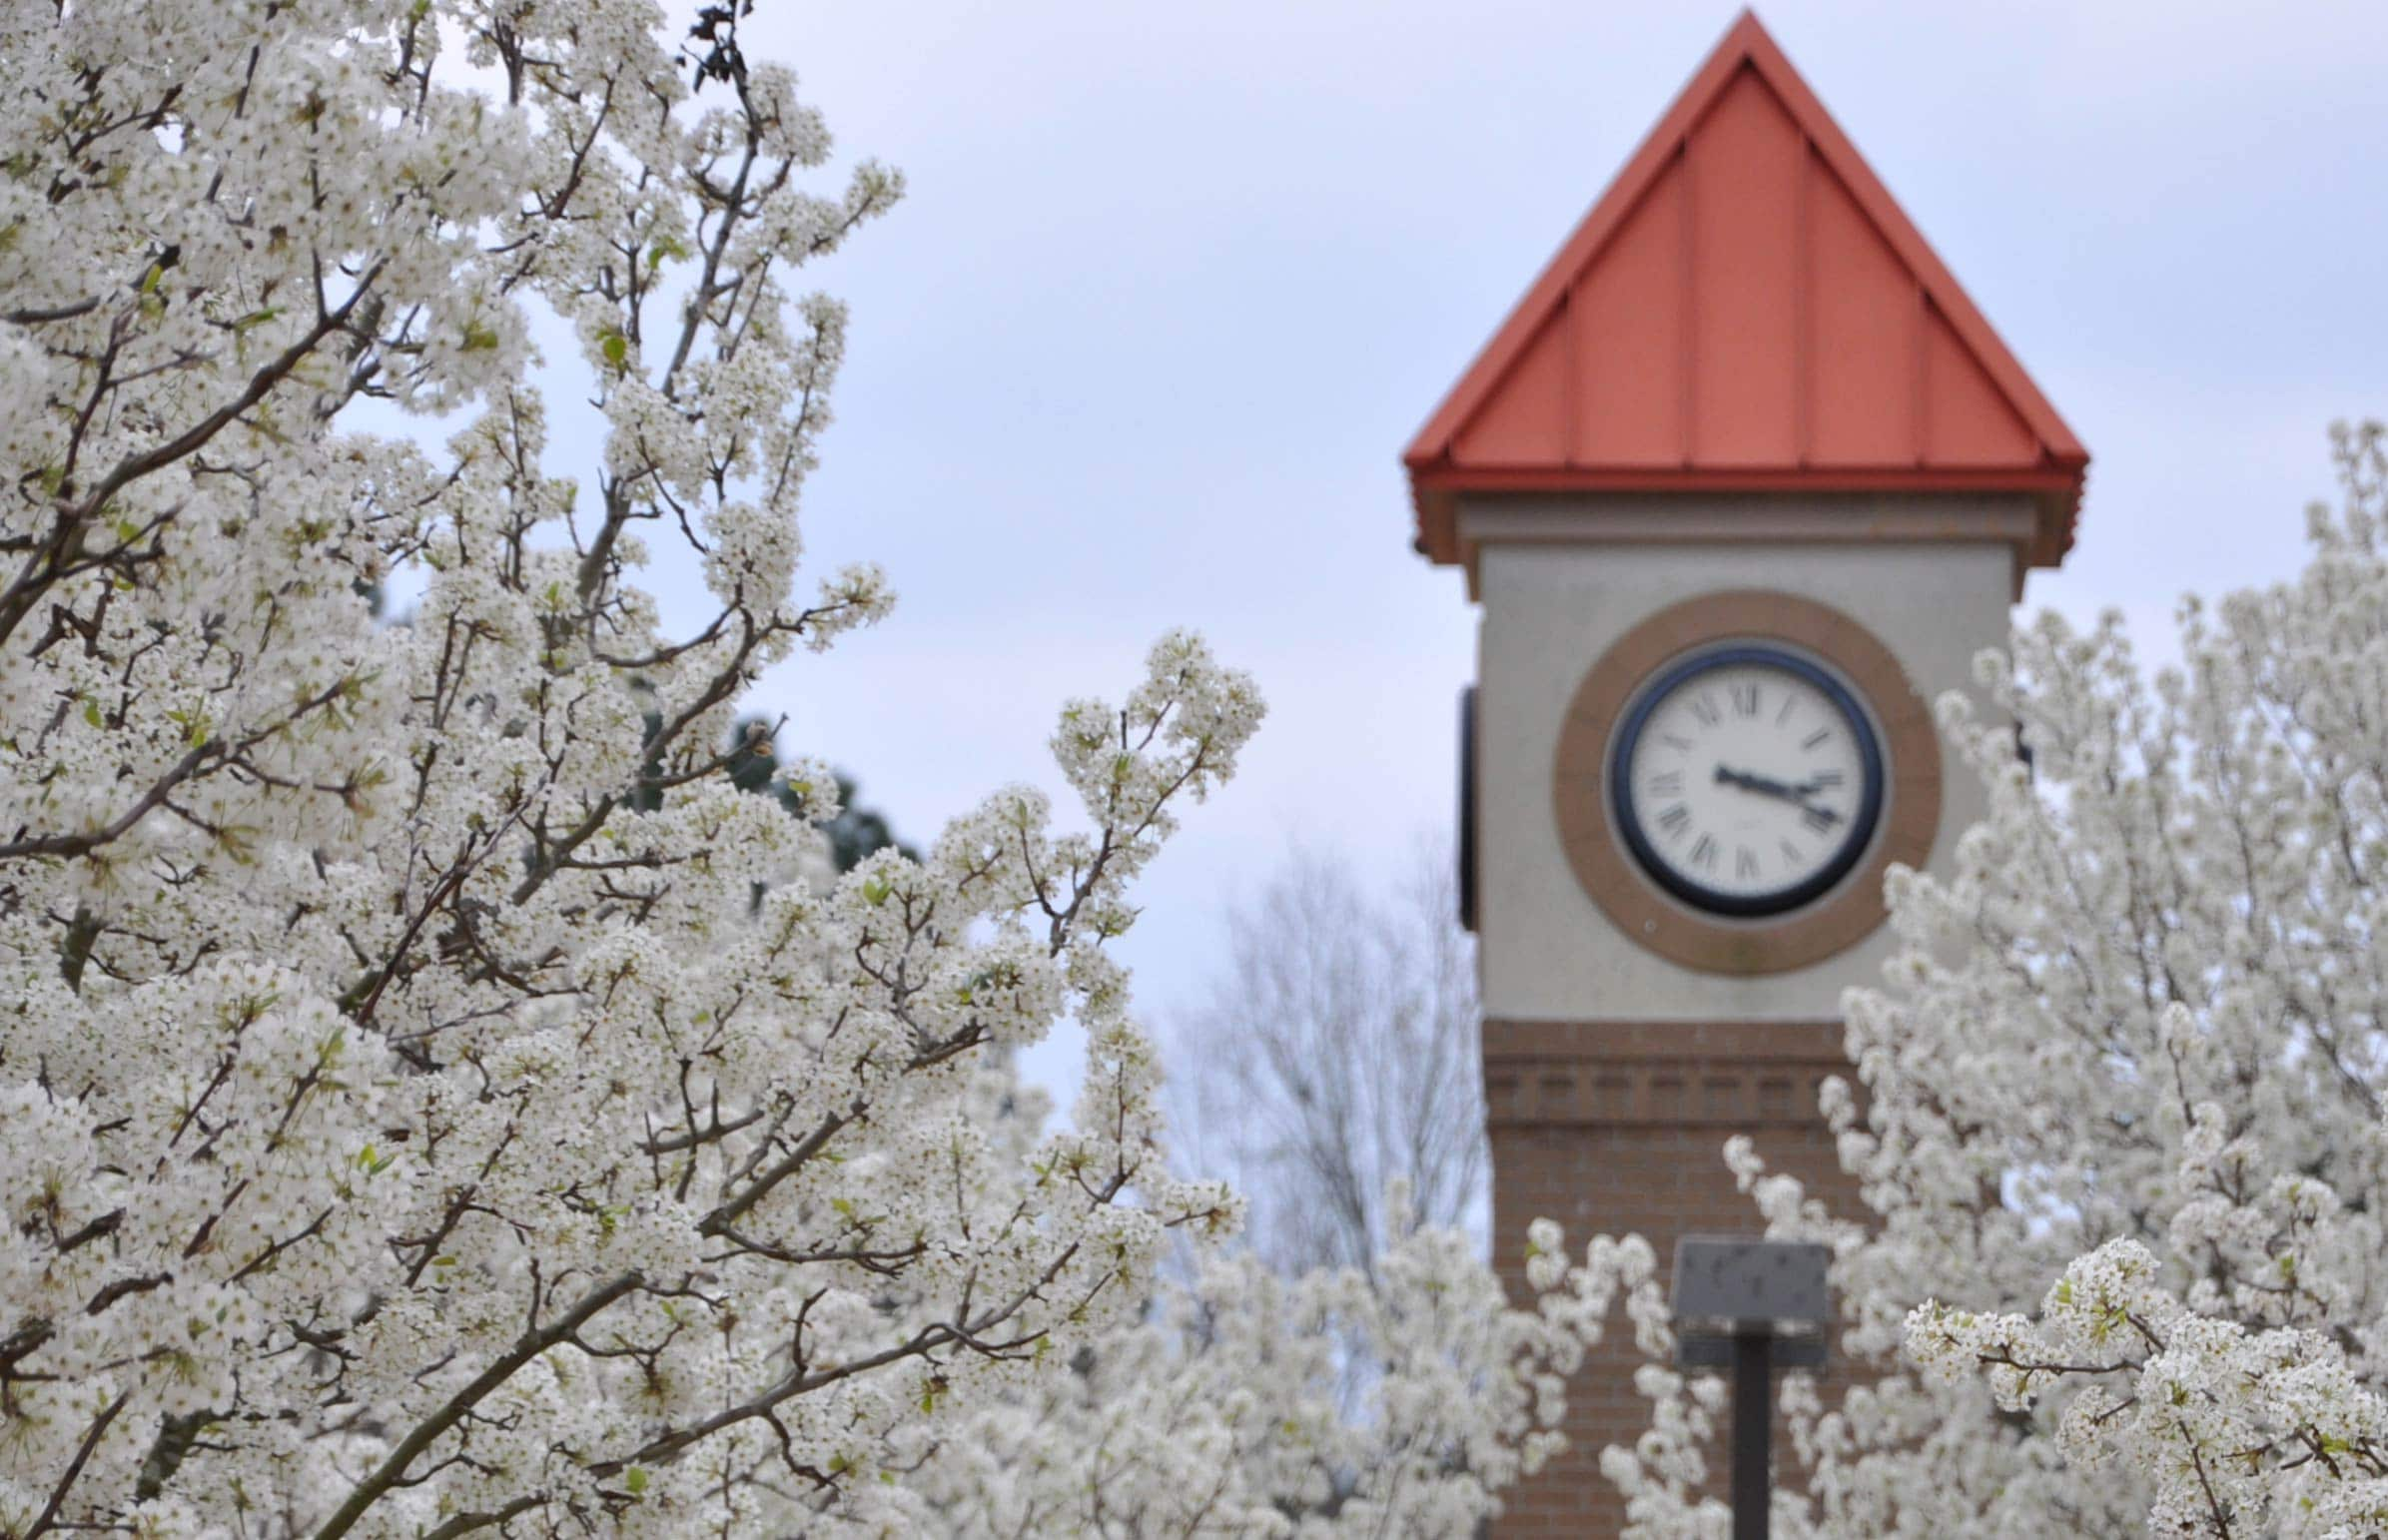 Flowers blooming with clock tower in background